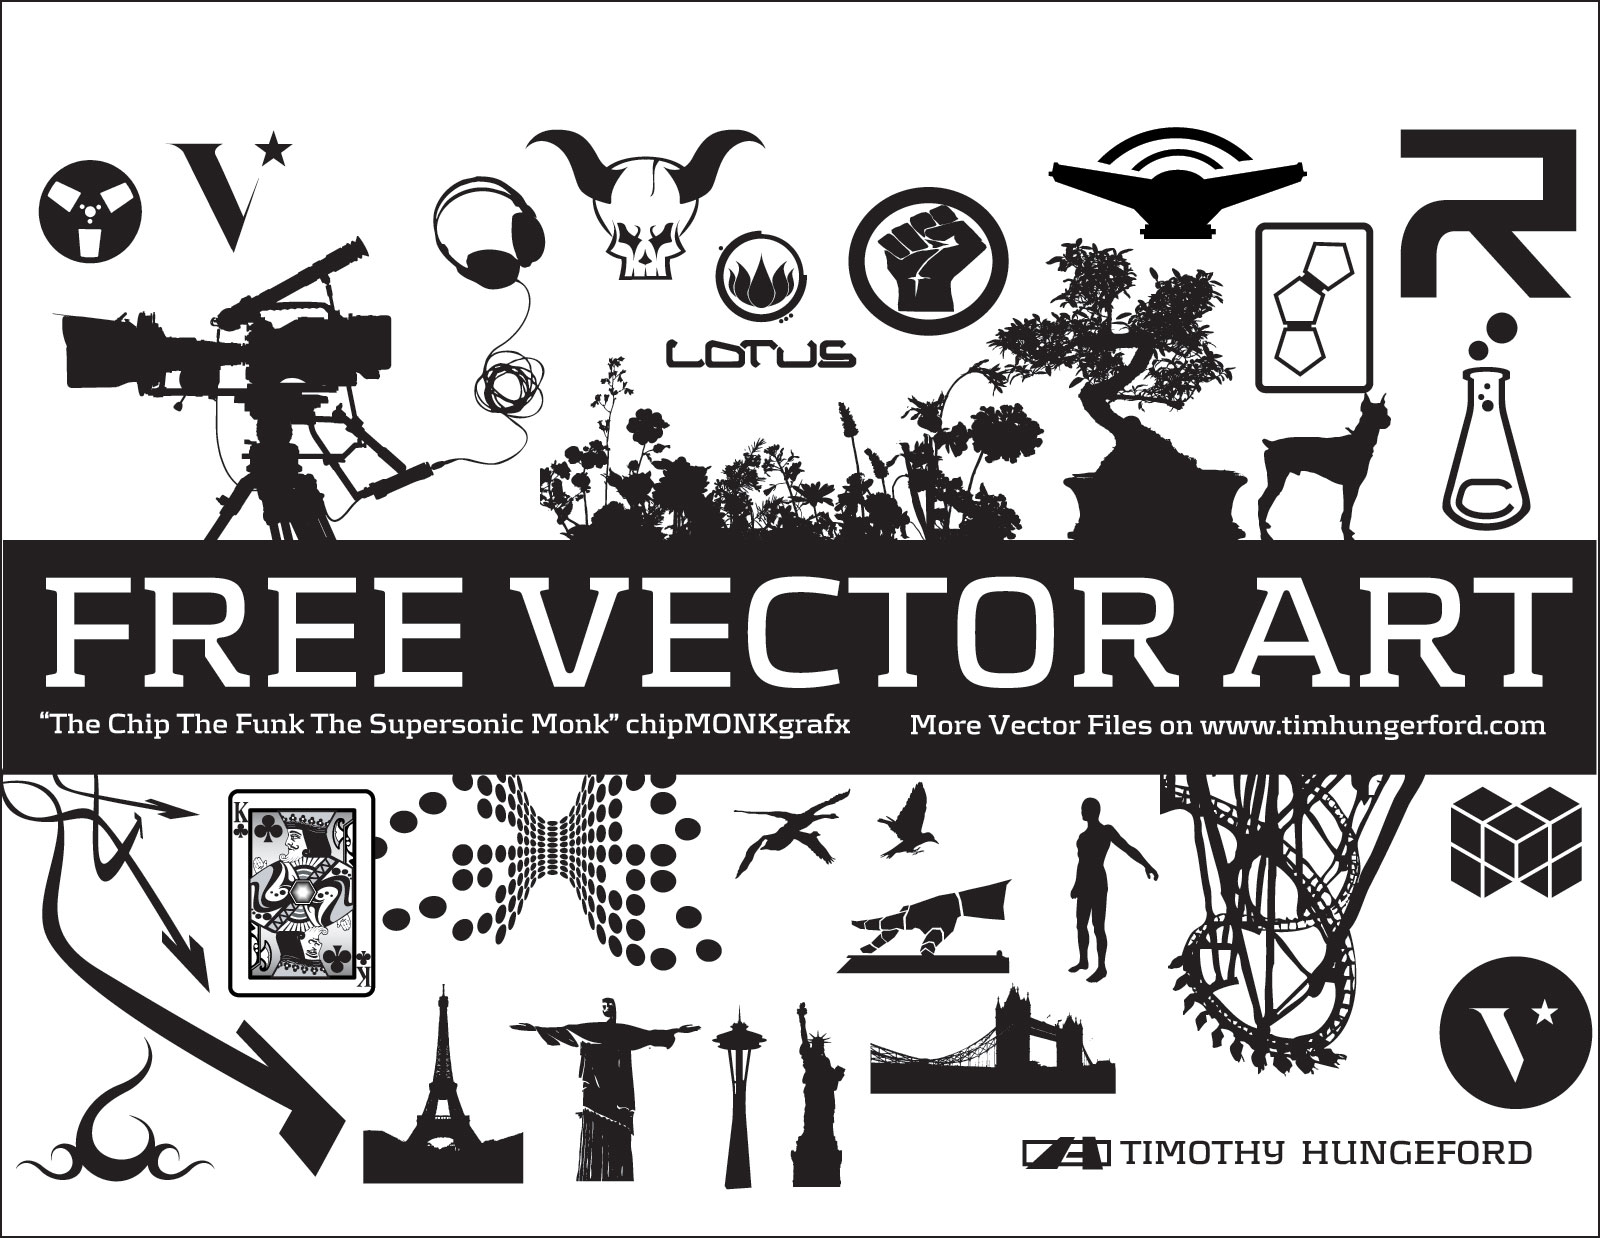 12 free vector downloads images free vector ornament downloads rh newdesignfile com Free Vector Clip Art Owl Vector Art Free Download